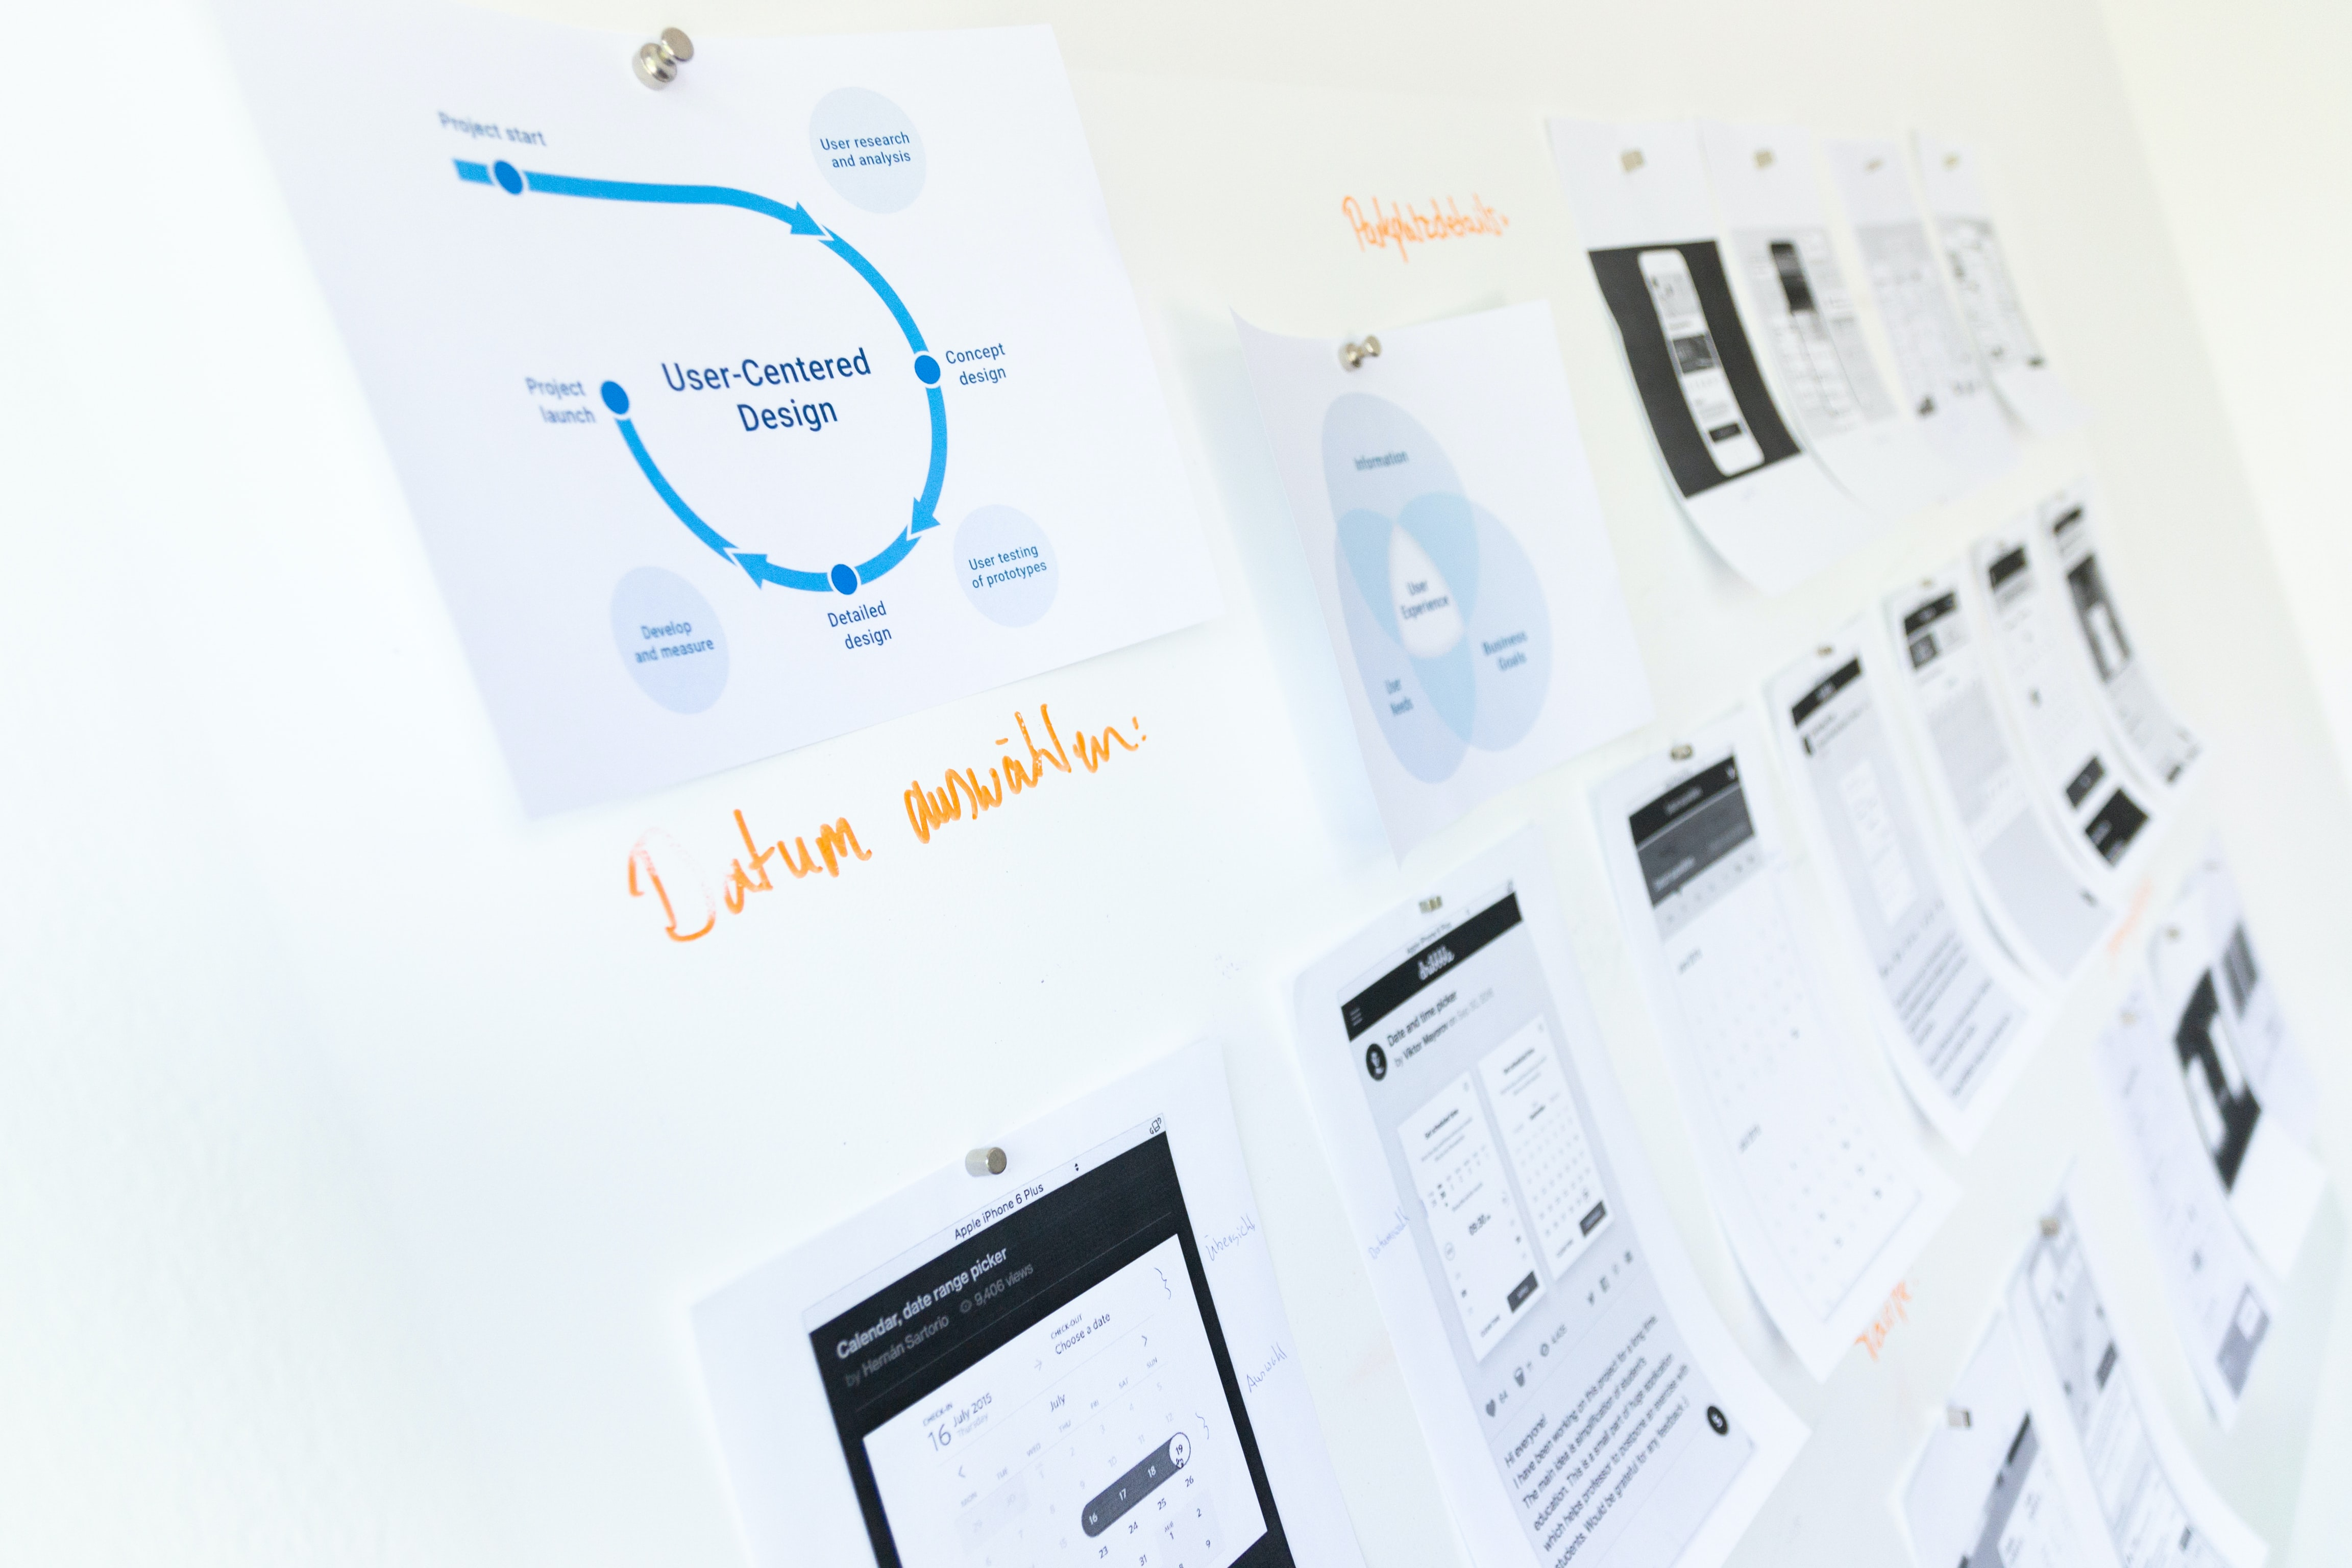 An image of papers on a whiteboard